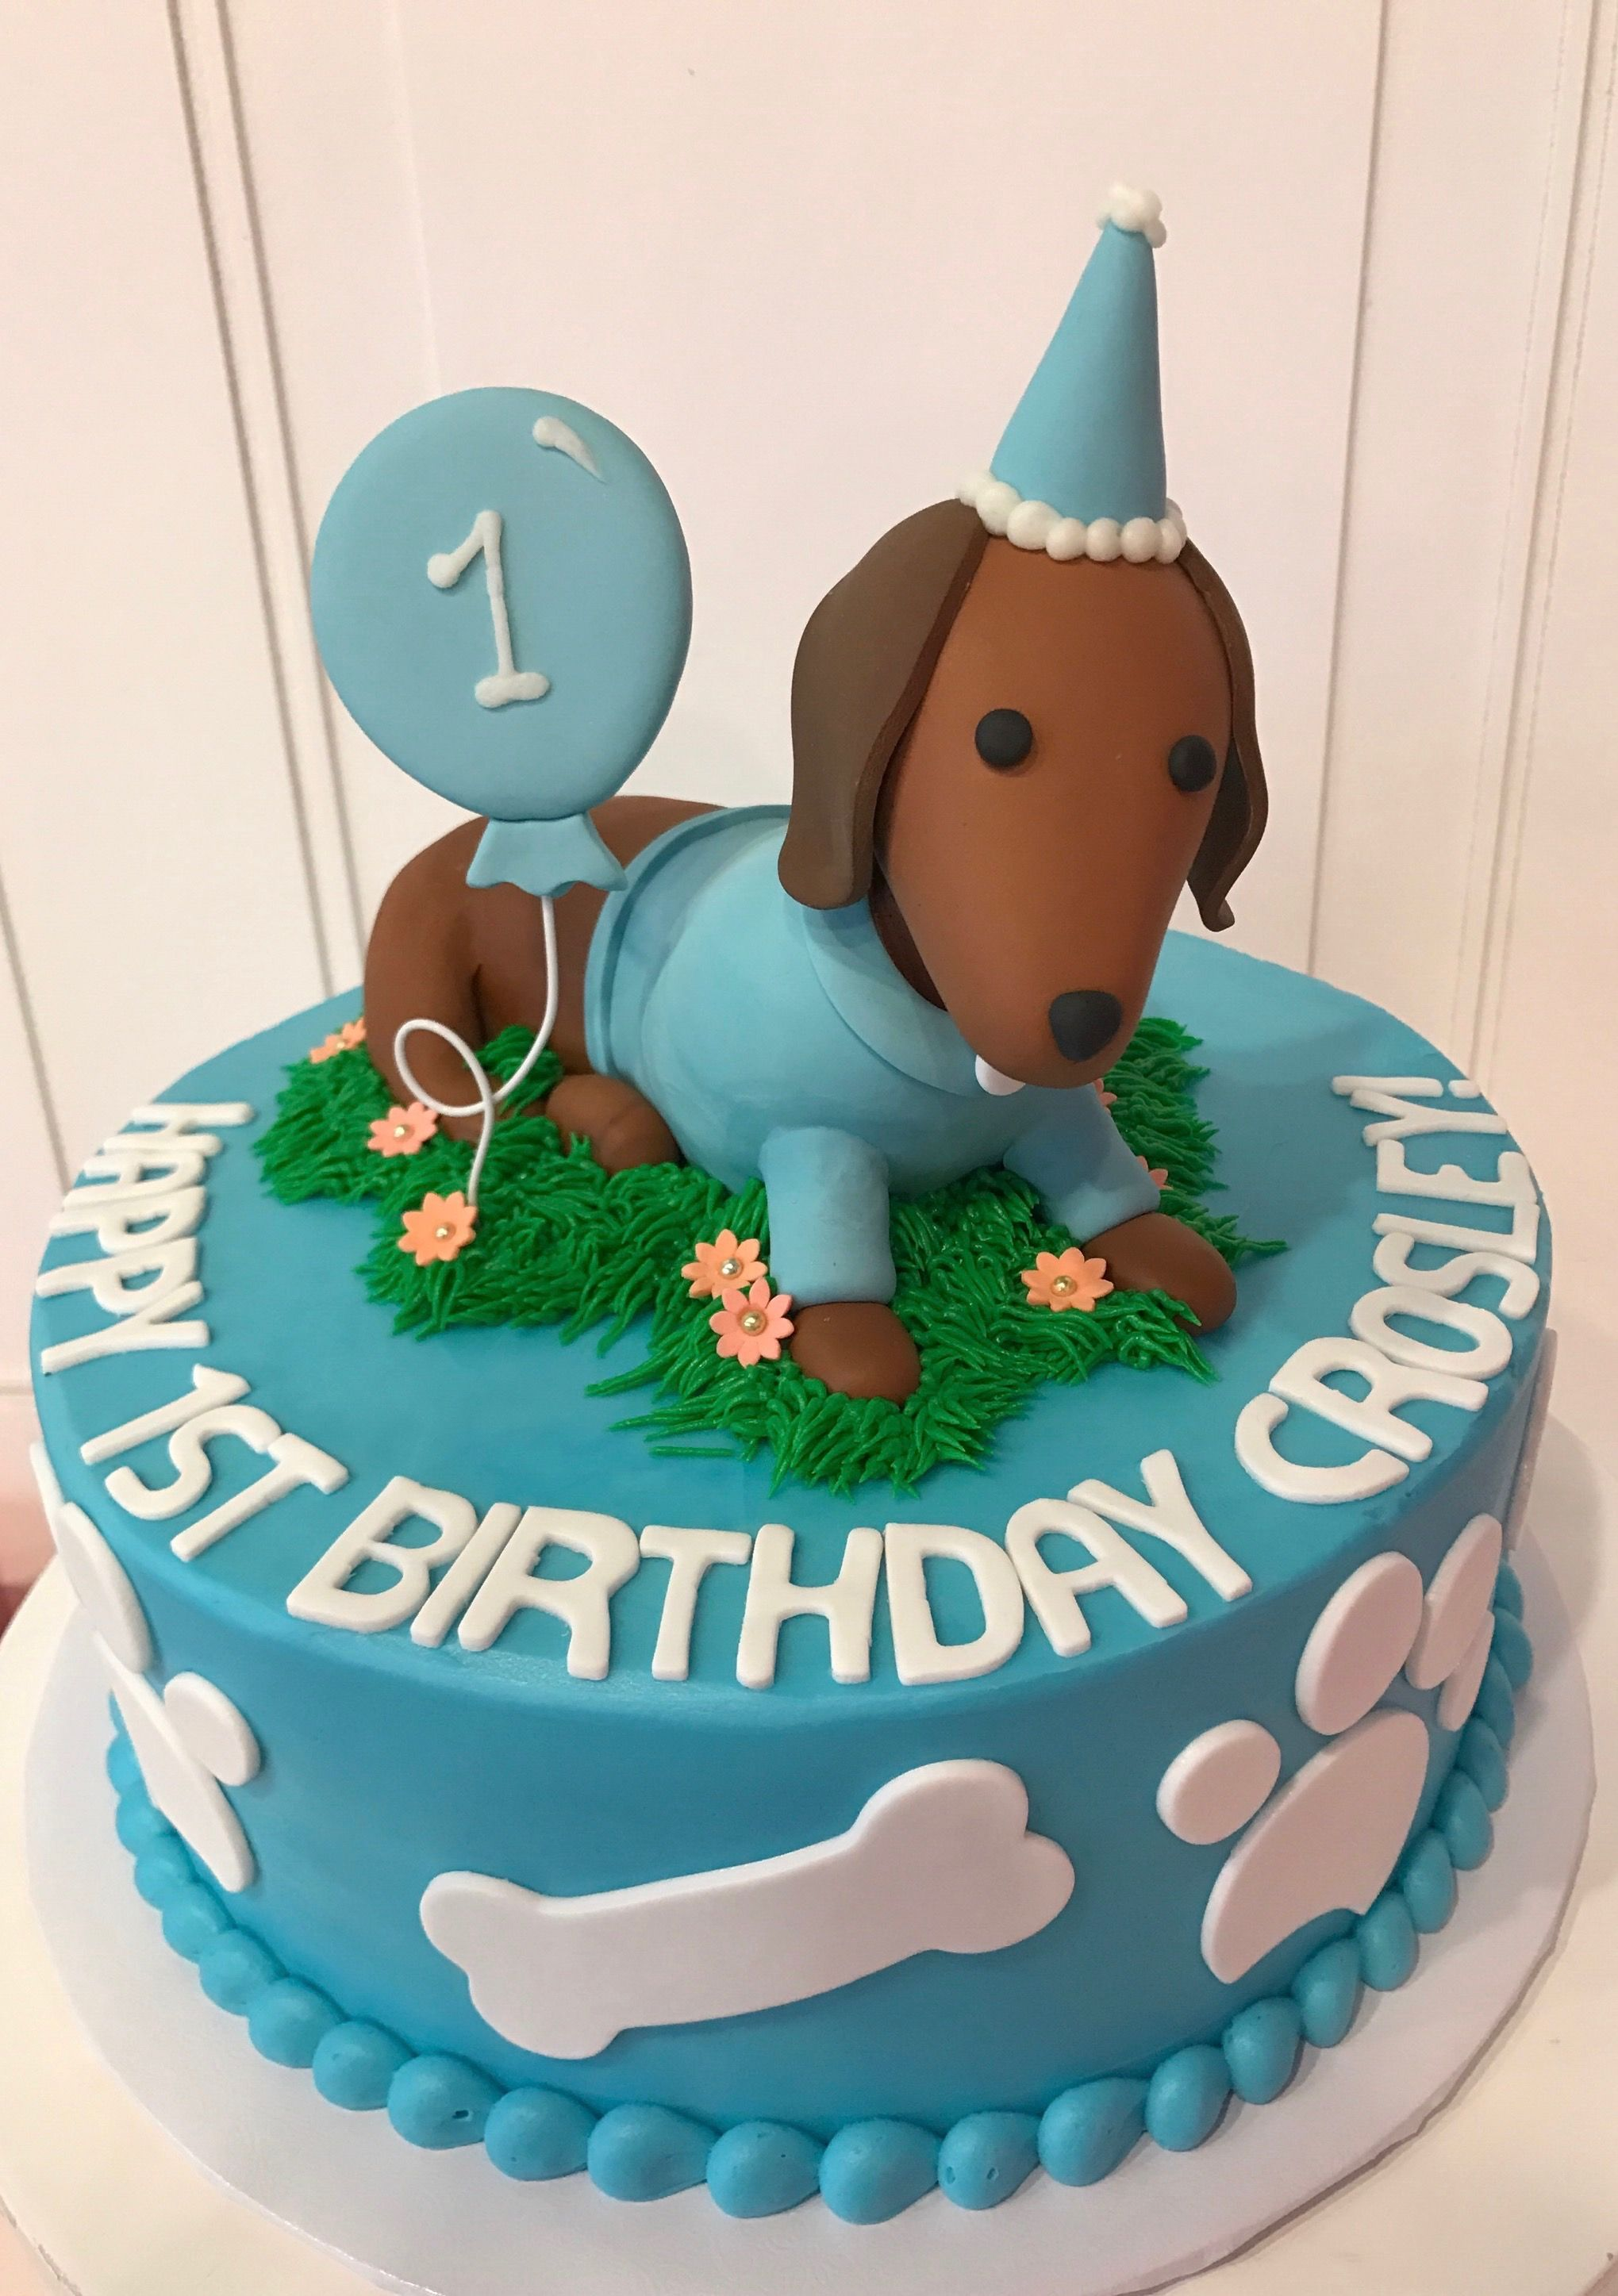 Cool Dachshund Birthday Cake With Balloon In Blue And White By 3 Sweet Funny Birthday Cards Online Unhofree Goldxyz